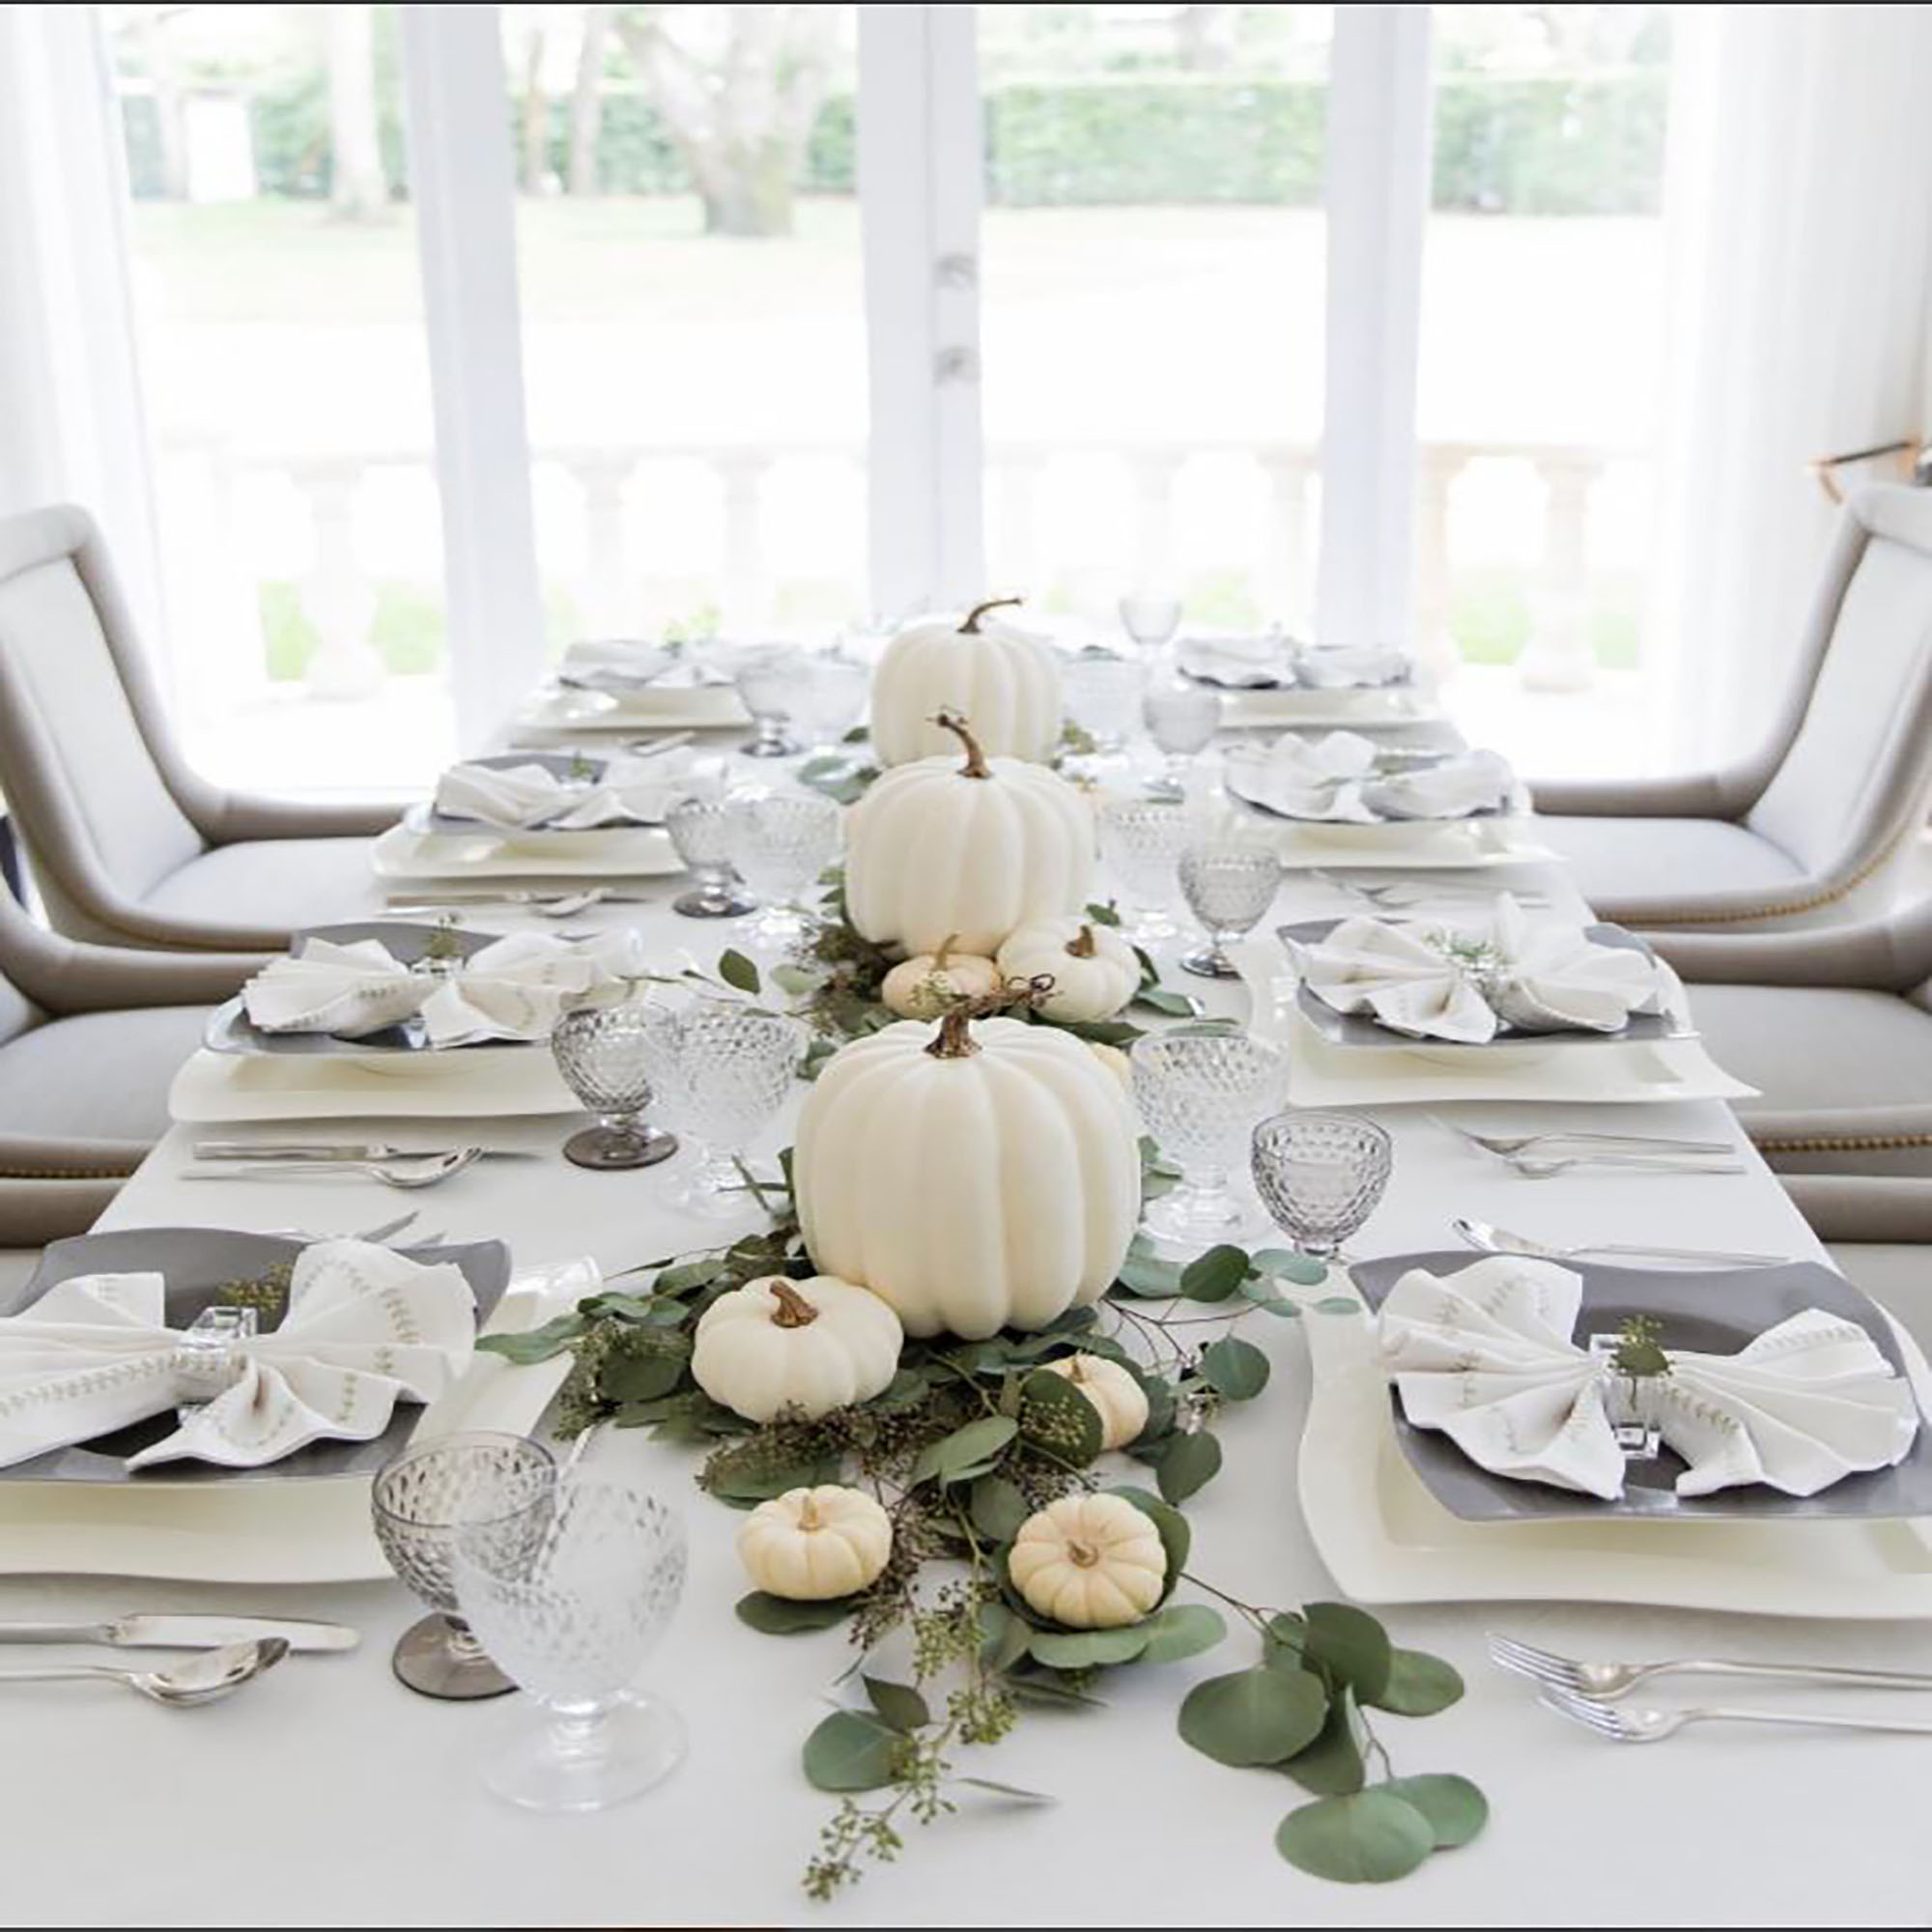 6 Ig Inspired Thanksgiving Table Ideas Kathy Kuo Blog Kathy Kuo Home - Thanksgiving-table-cloth